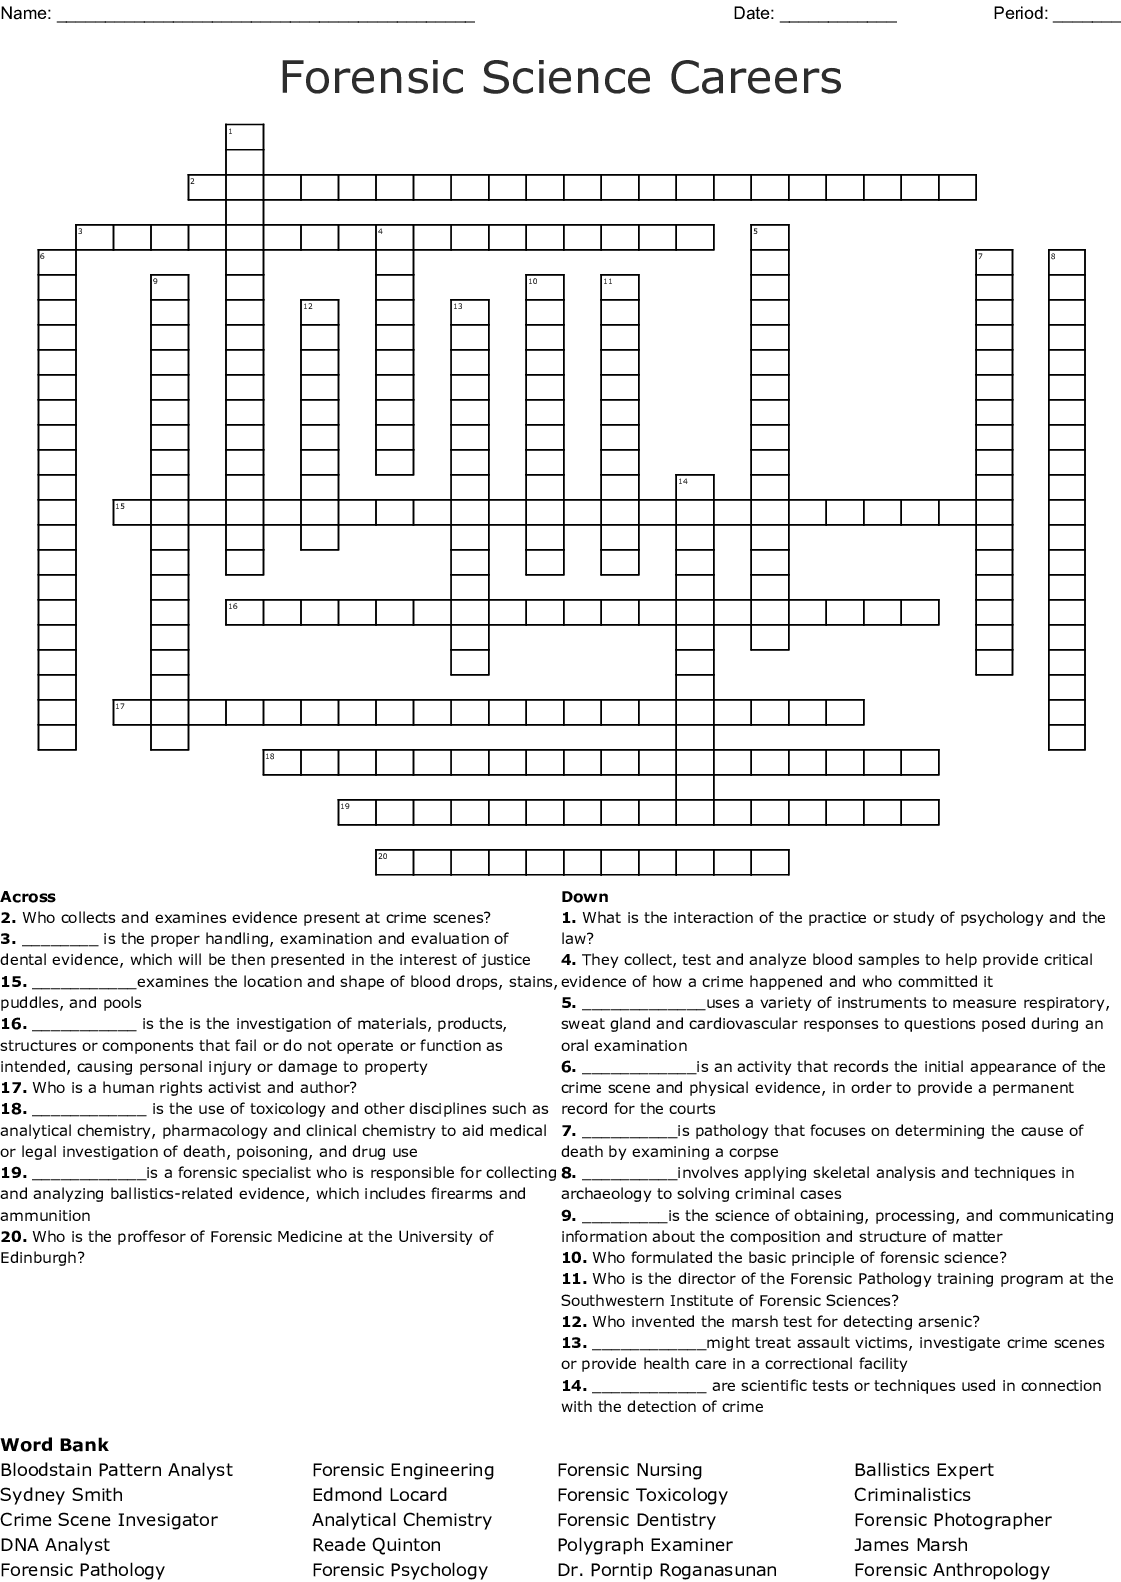 Forensics And Criminolgy Word Search